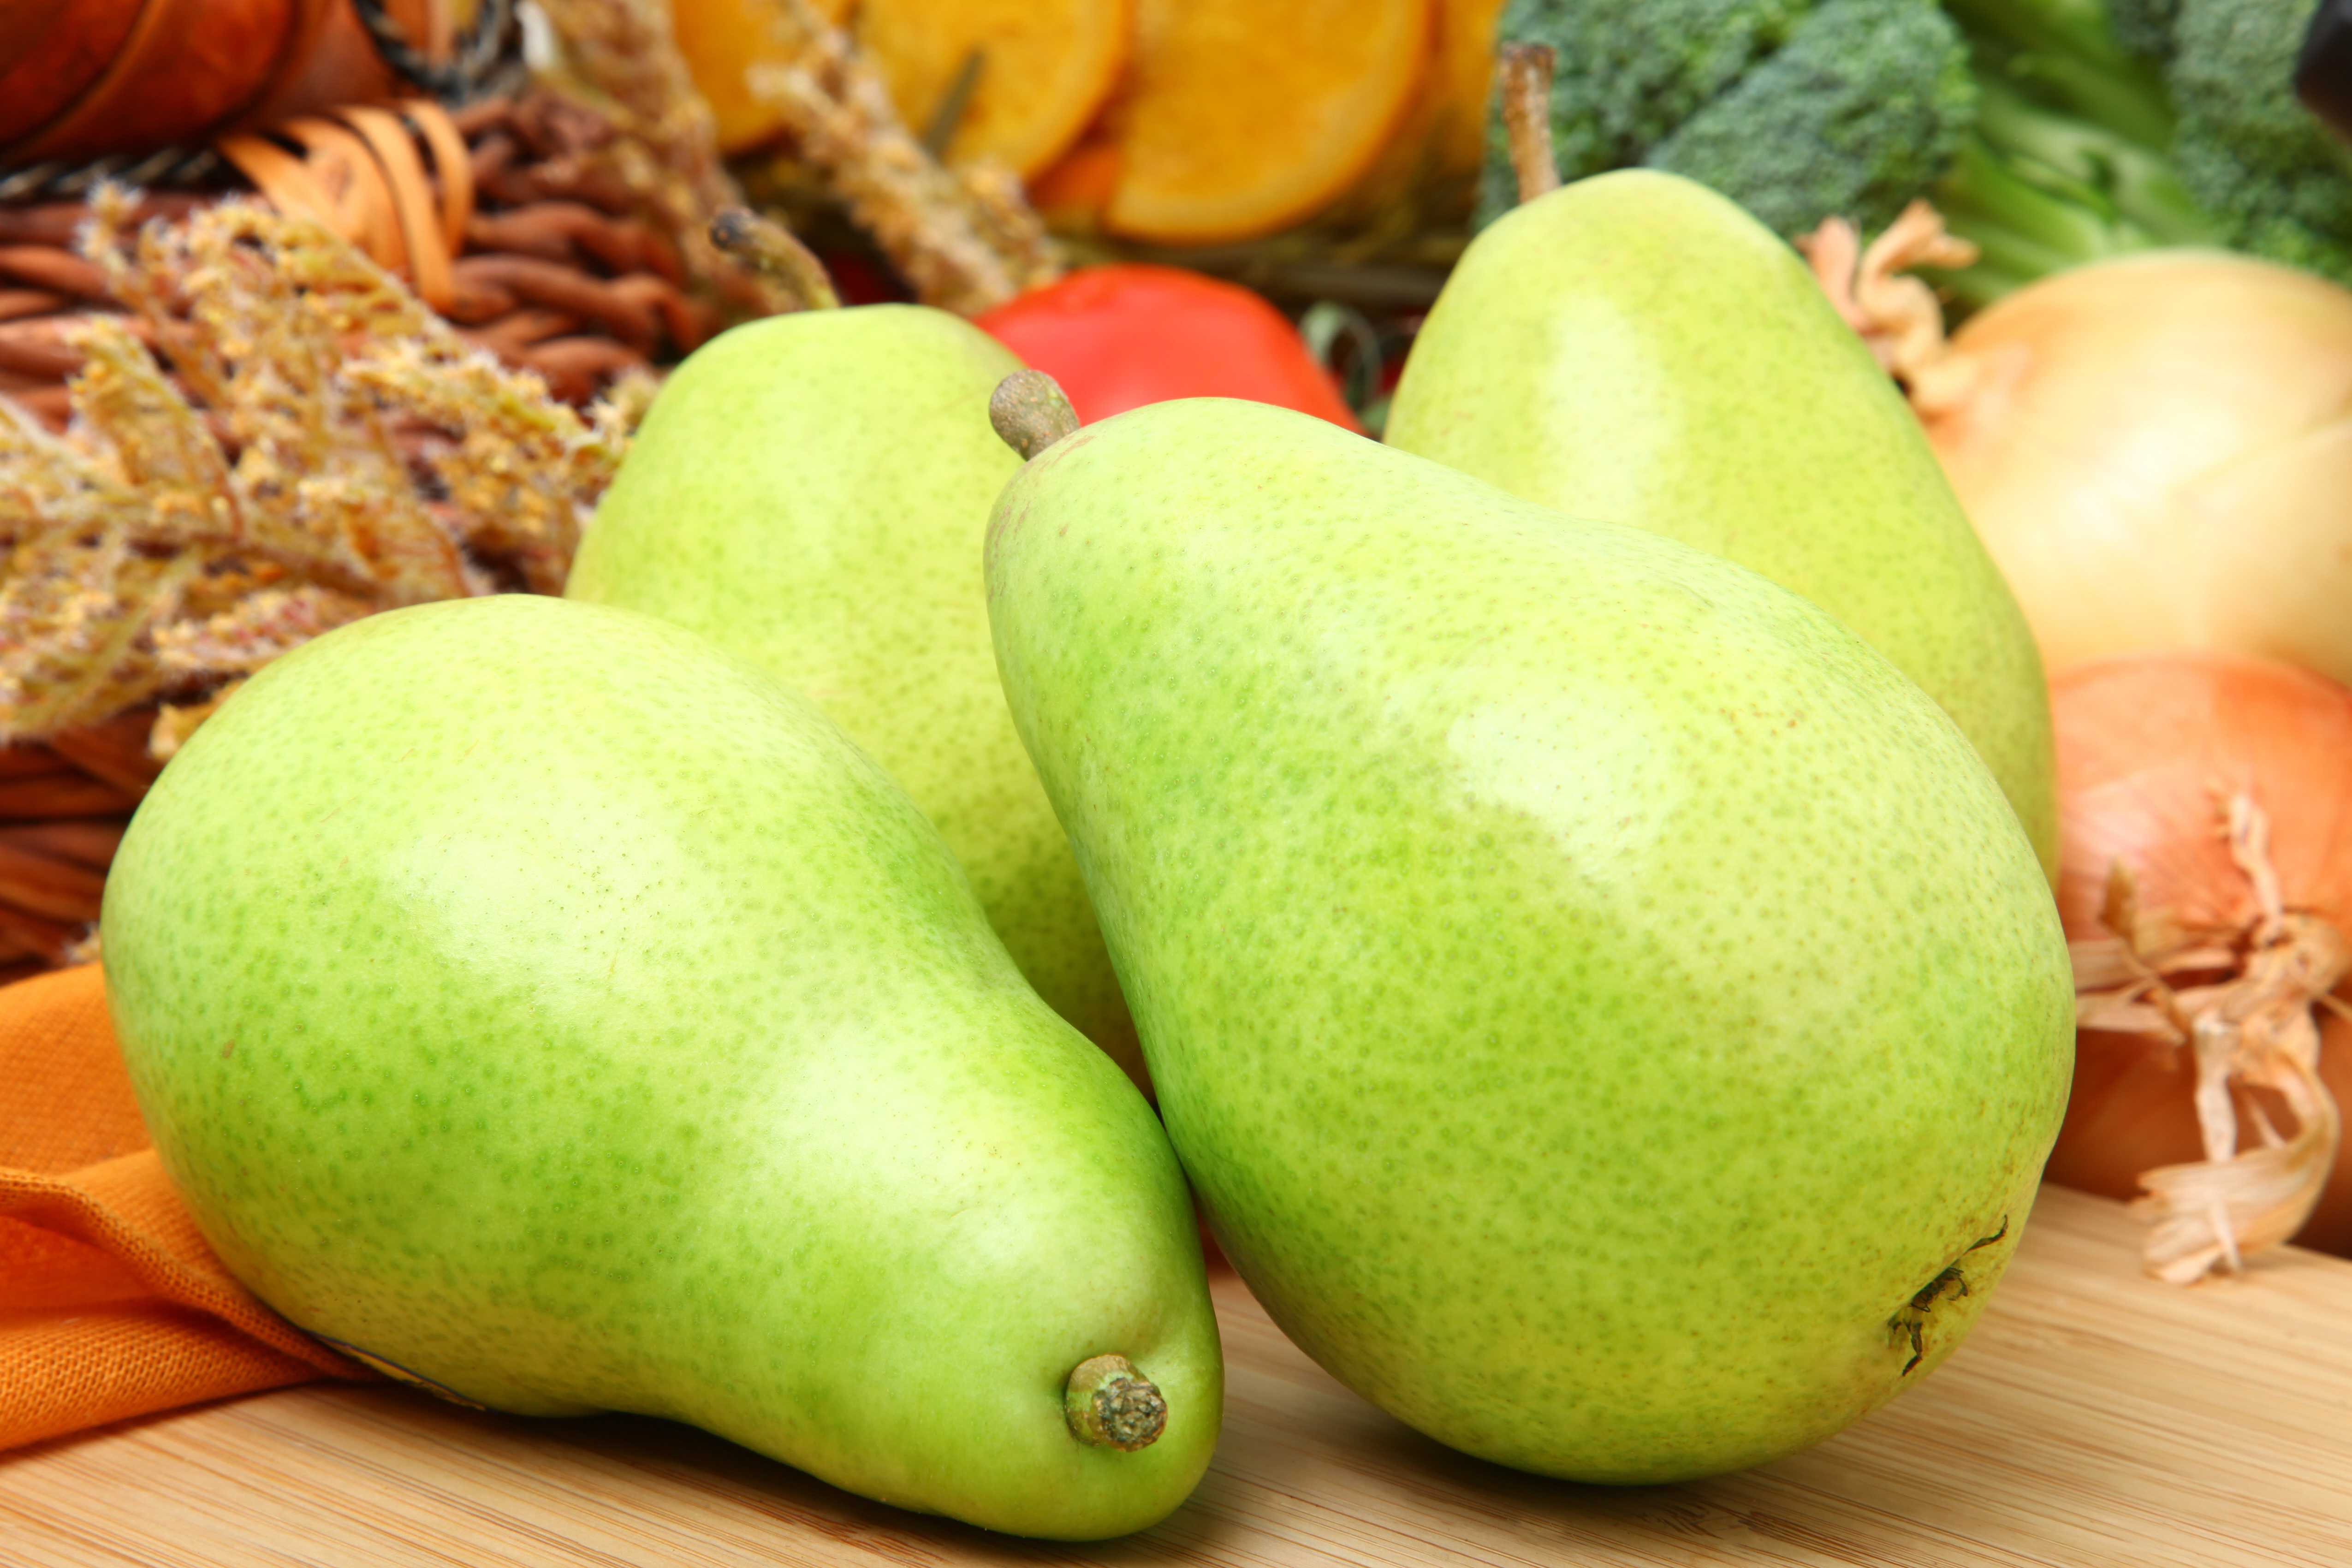 Anjou pears are the most common winter pear.